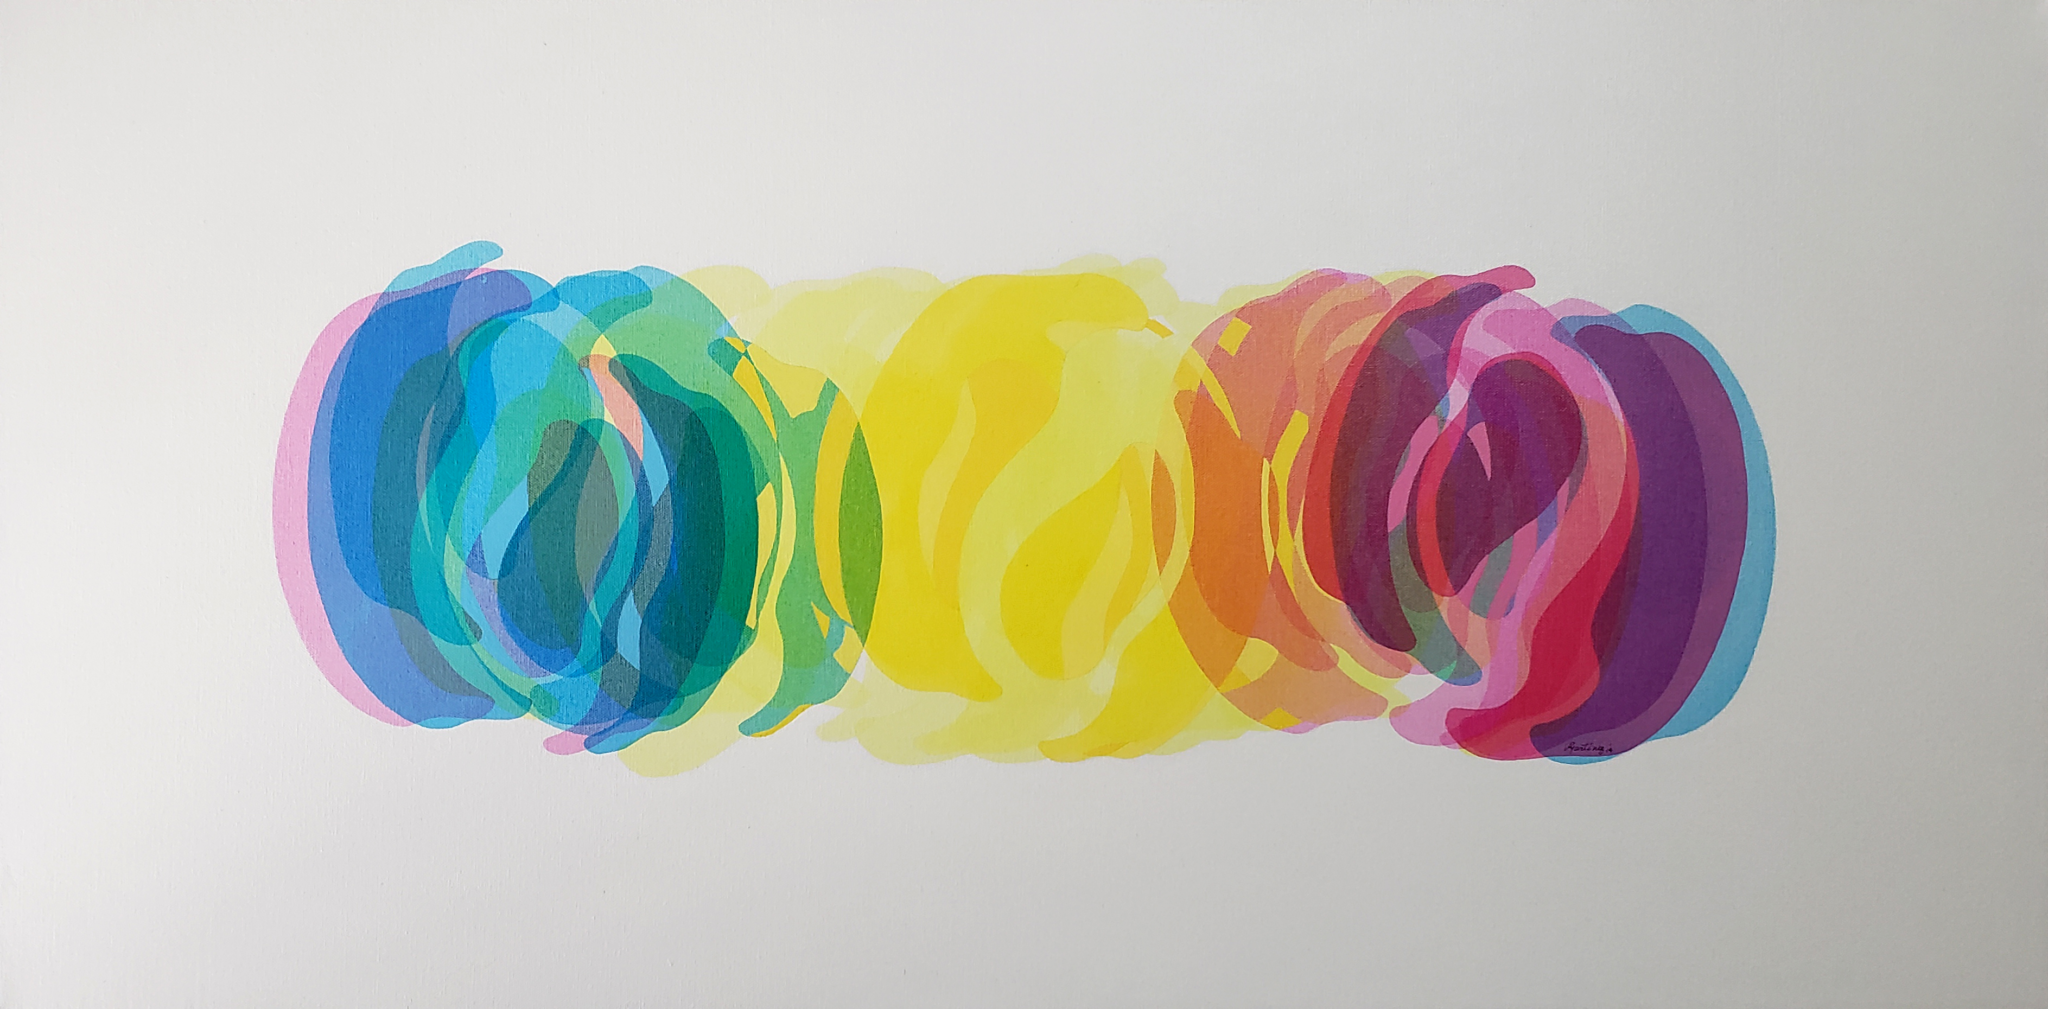 Light Spectrum    ///    Acrylic paint and serigraphy on canvas - 24 x 48 x 1.5 in - 2019